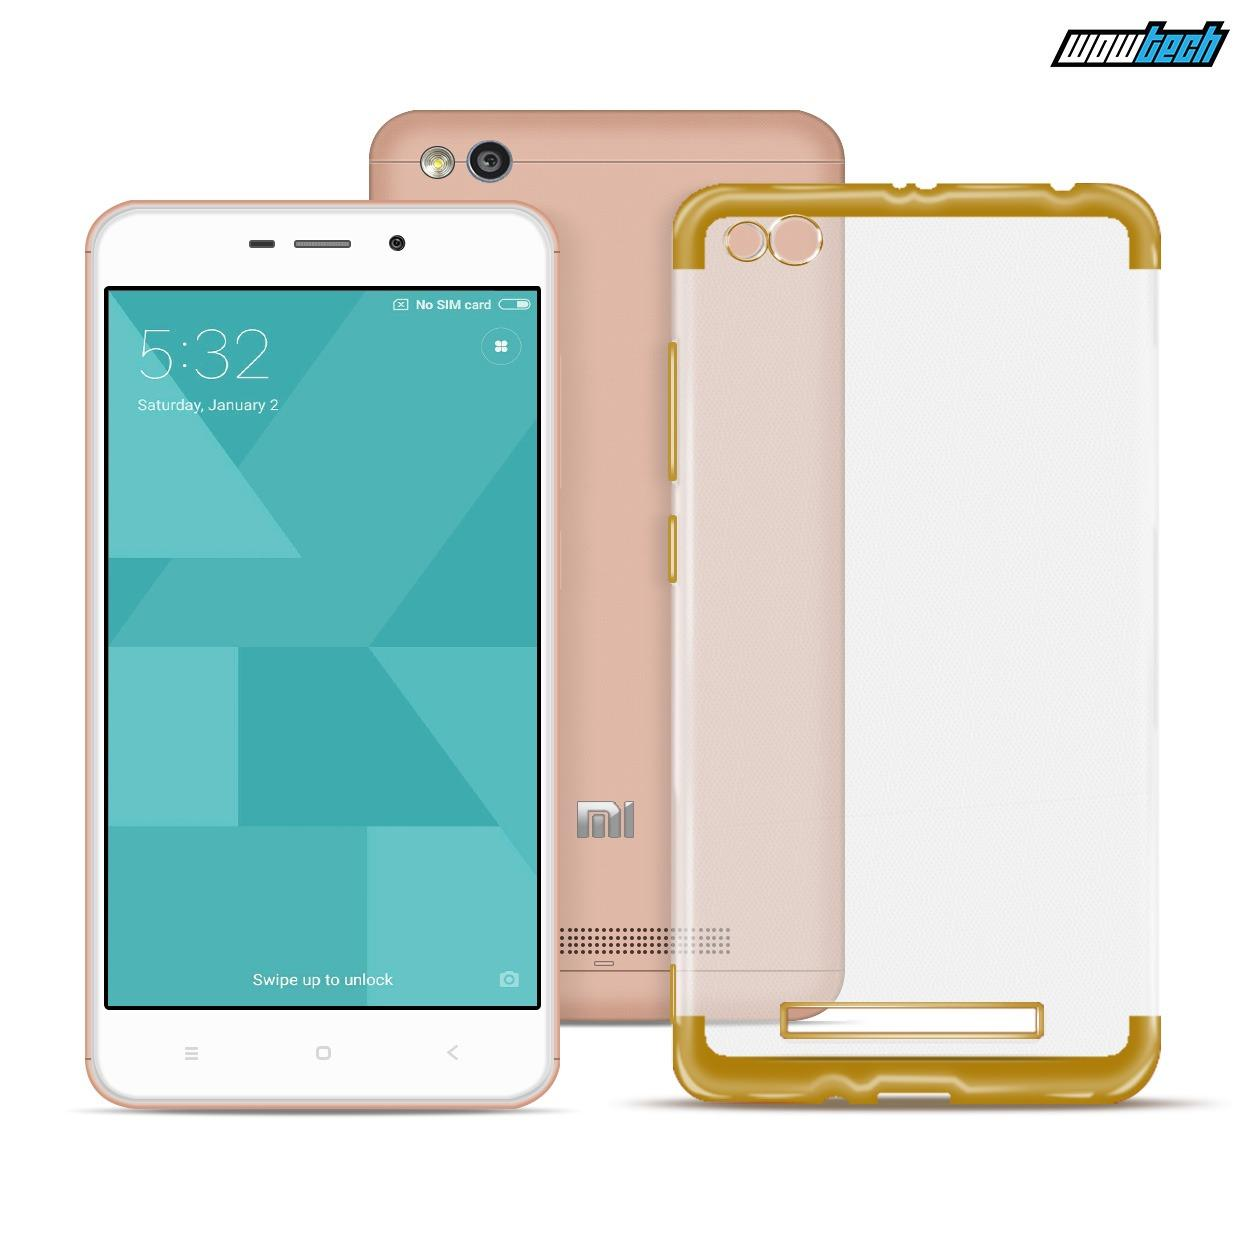 Xiaomi Phone Cases Philippines Cellphone For Sale Case Redmi Note 5 Pro Hardcase 360 Full Protective Ace Soft Tpu Jelly V2 4a Gold Clear